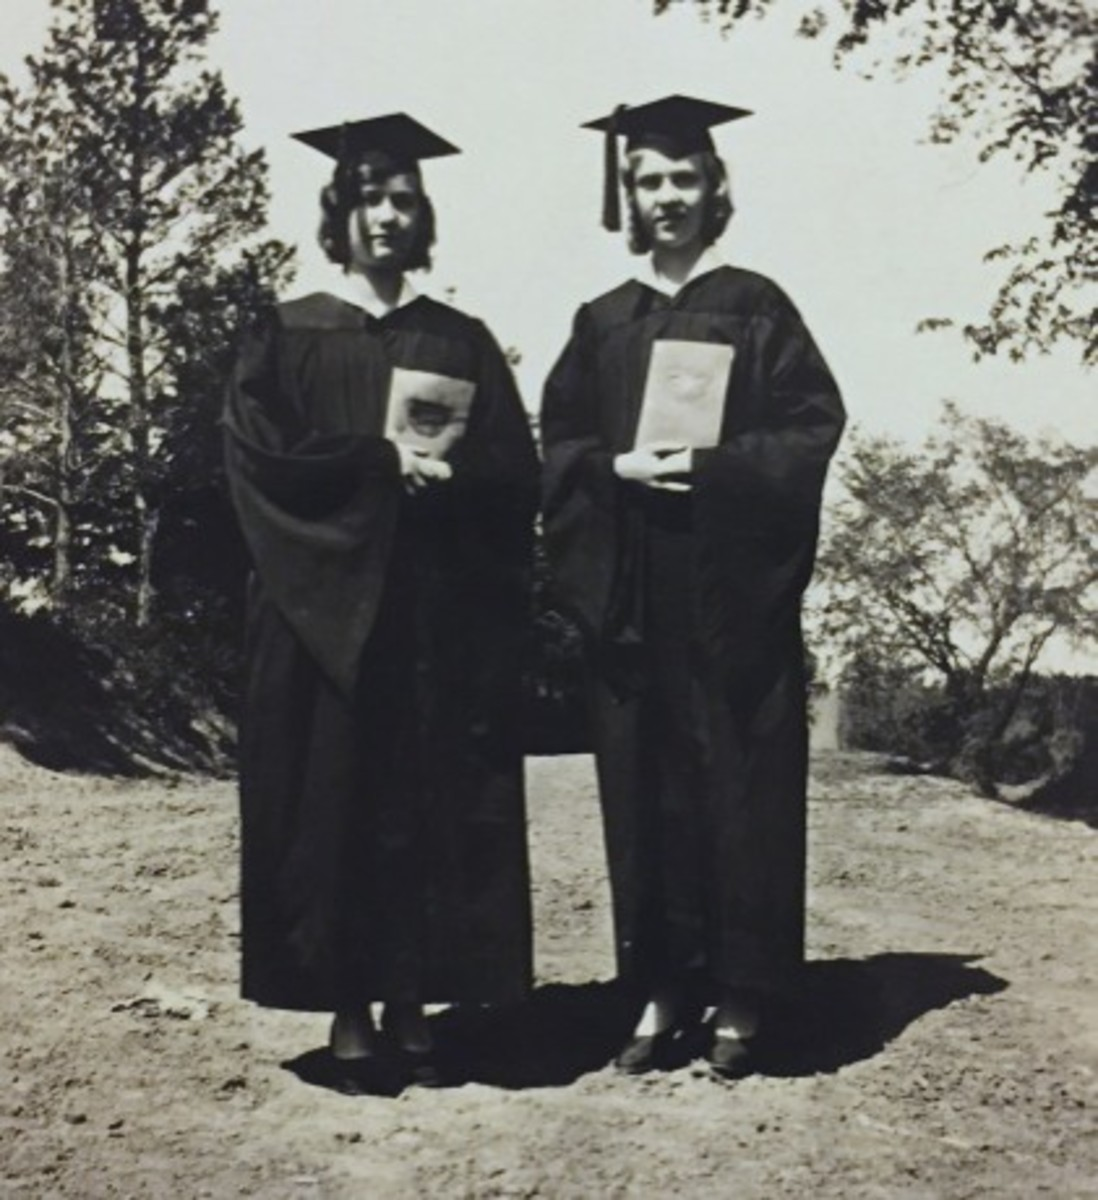 Agnes, right, and her sister, Evelyn, at their high school graduation in 1931.